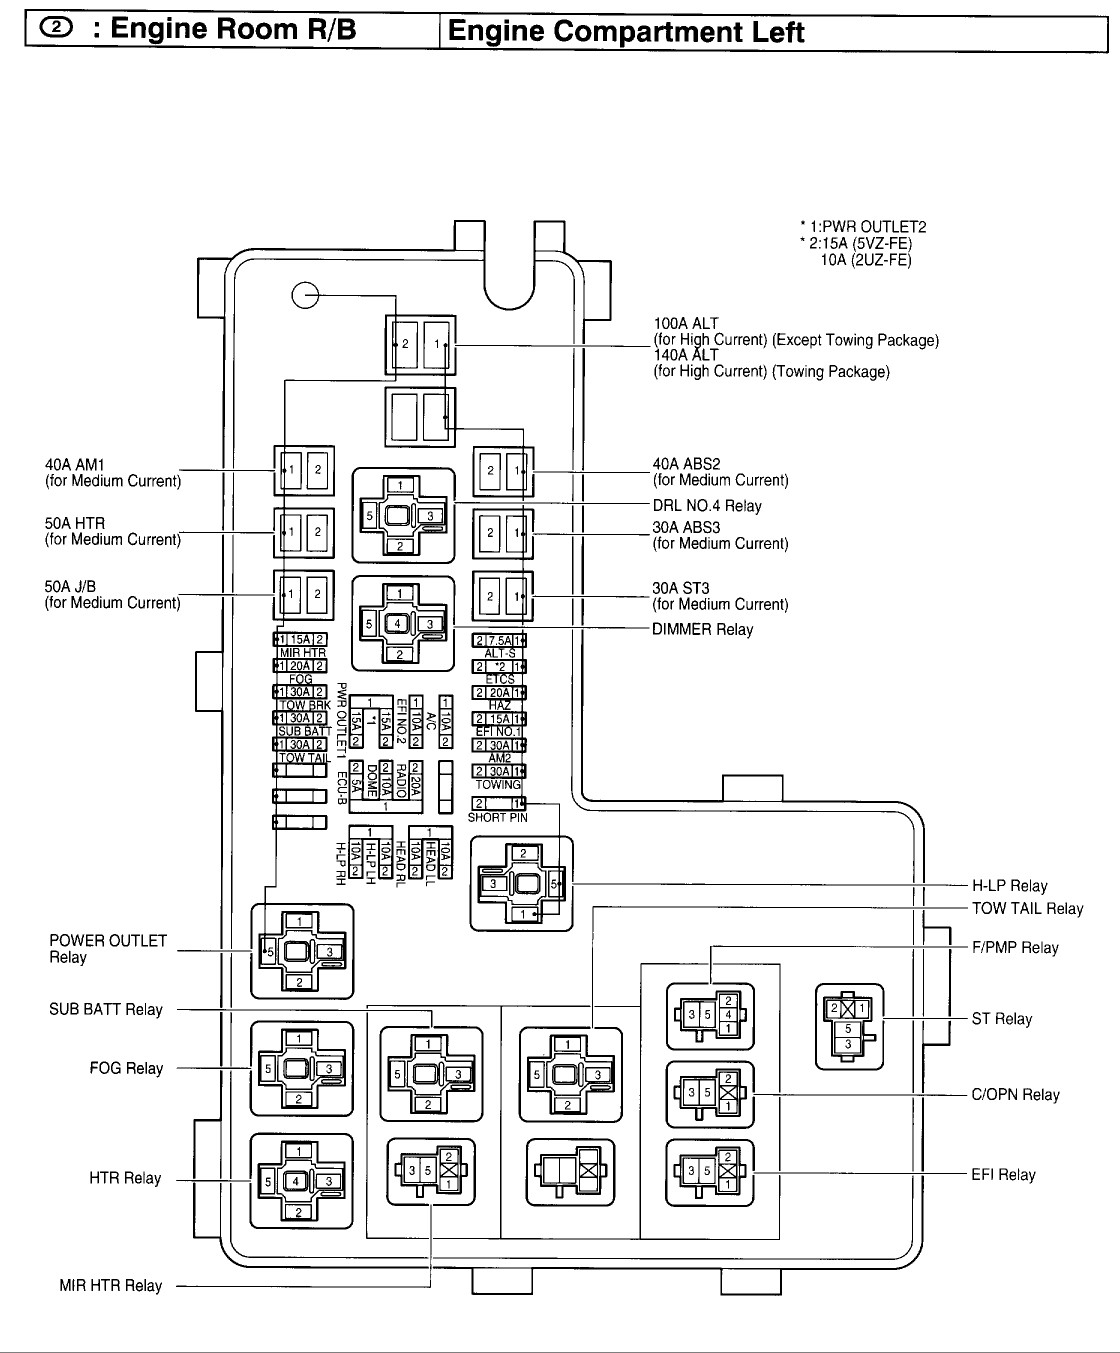 [DVZP_7254]   DIAGRAM] 06 Tundra Fuse Diagram FULL Version HD Quality Fuse Diagram -  WIRESIZES.LEXANESIRAC.FR | Fuse Box For 2003 Toyota Tundra |  | Portal Diagram Database